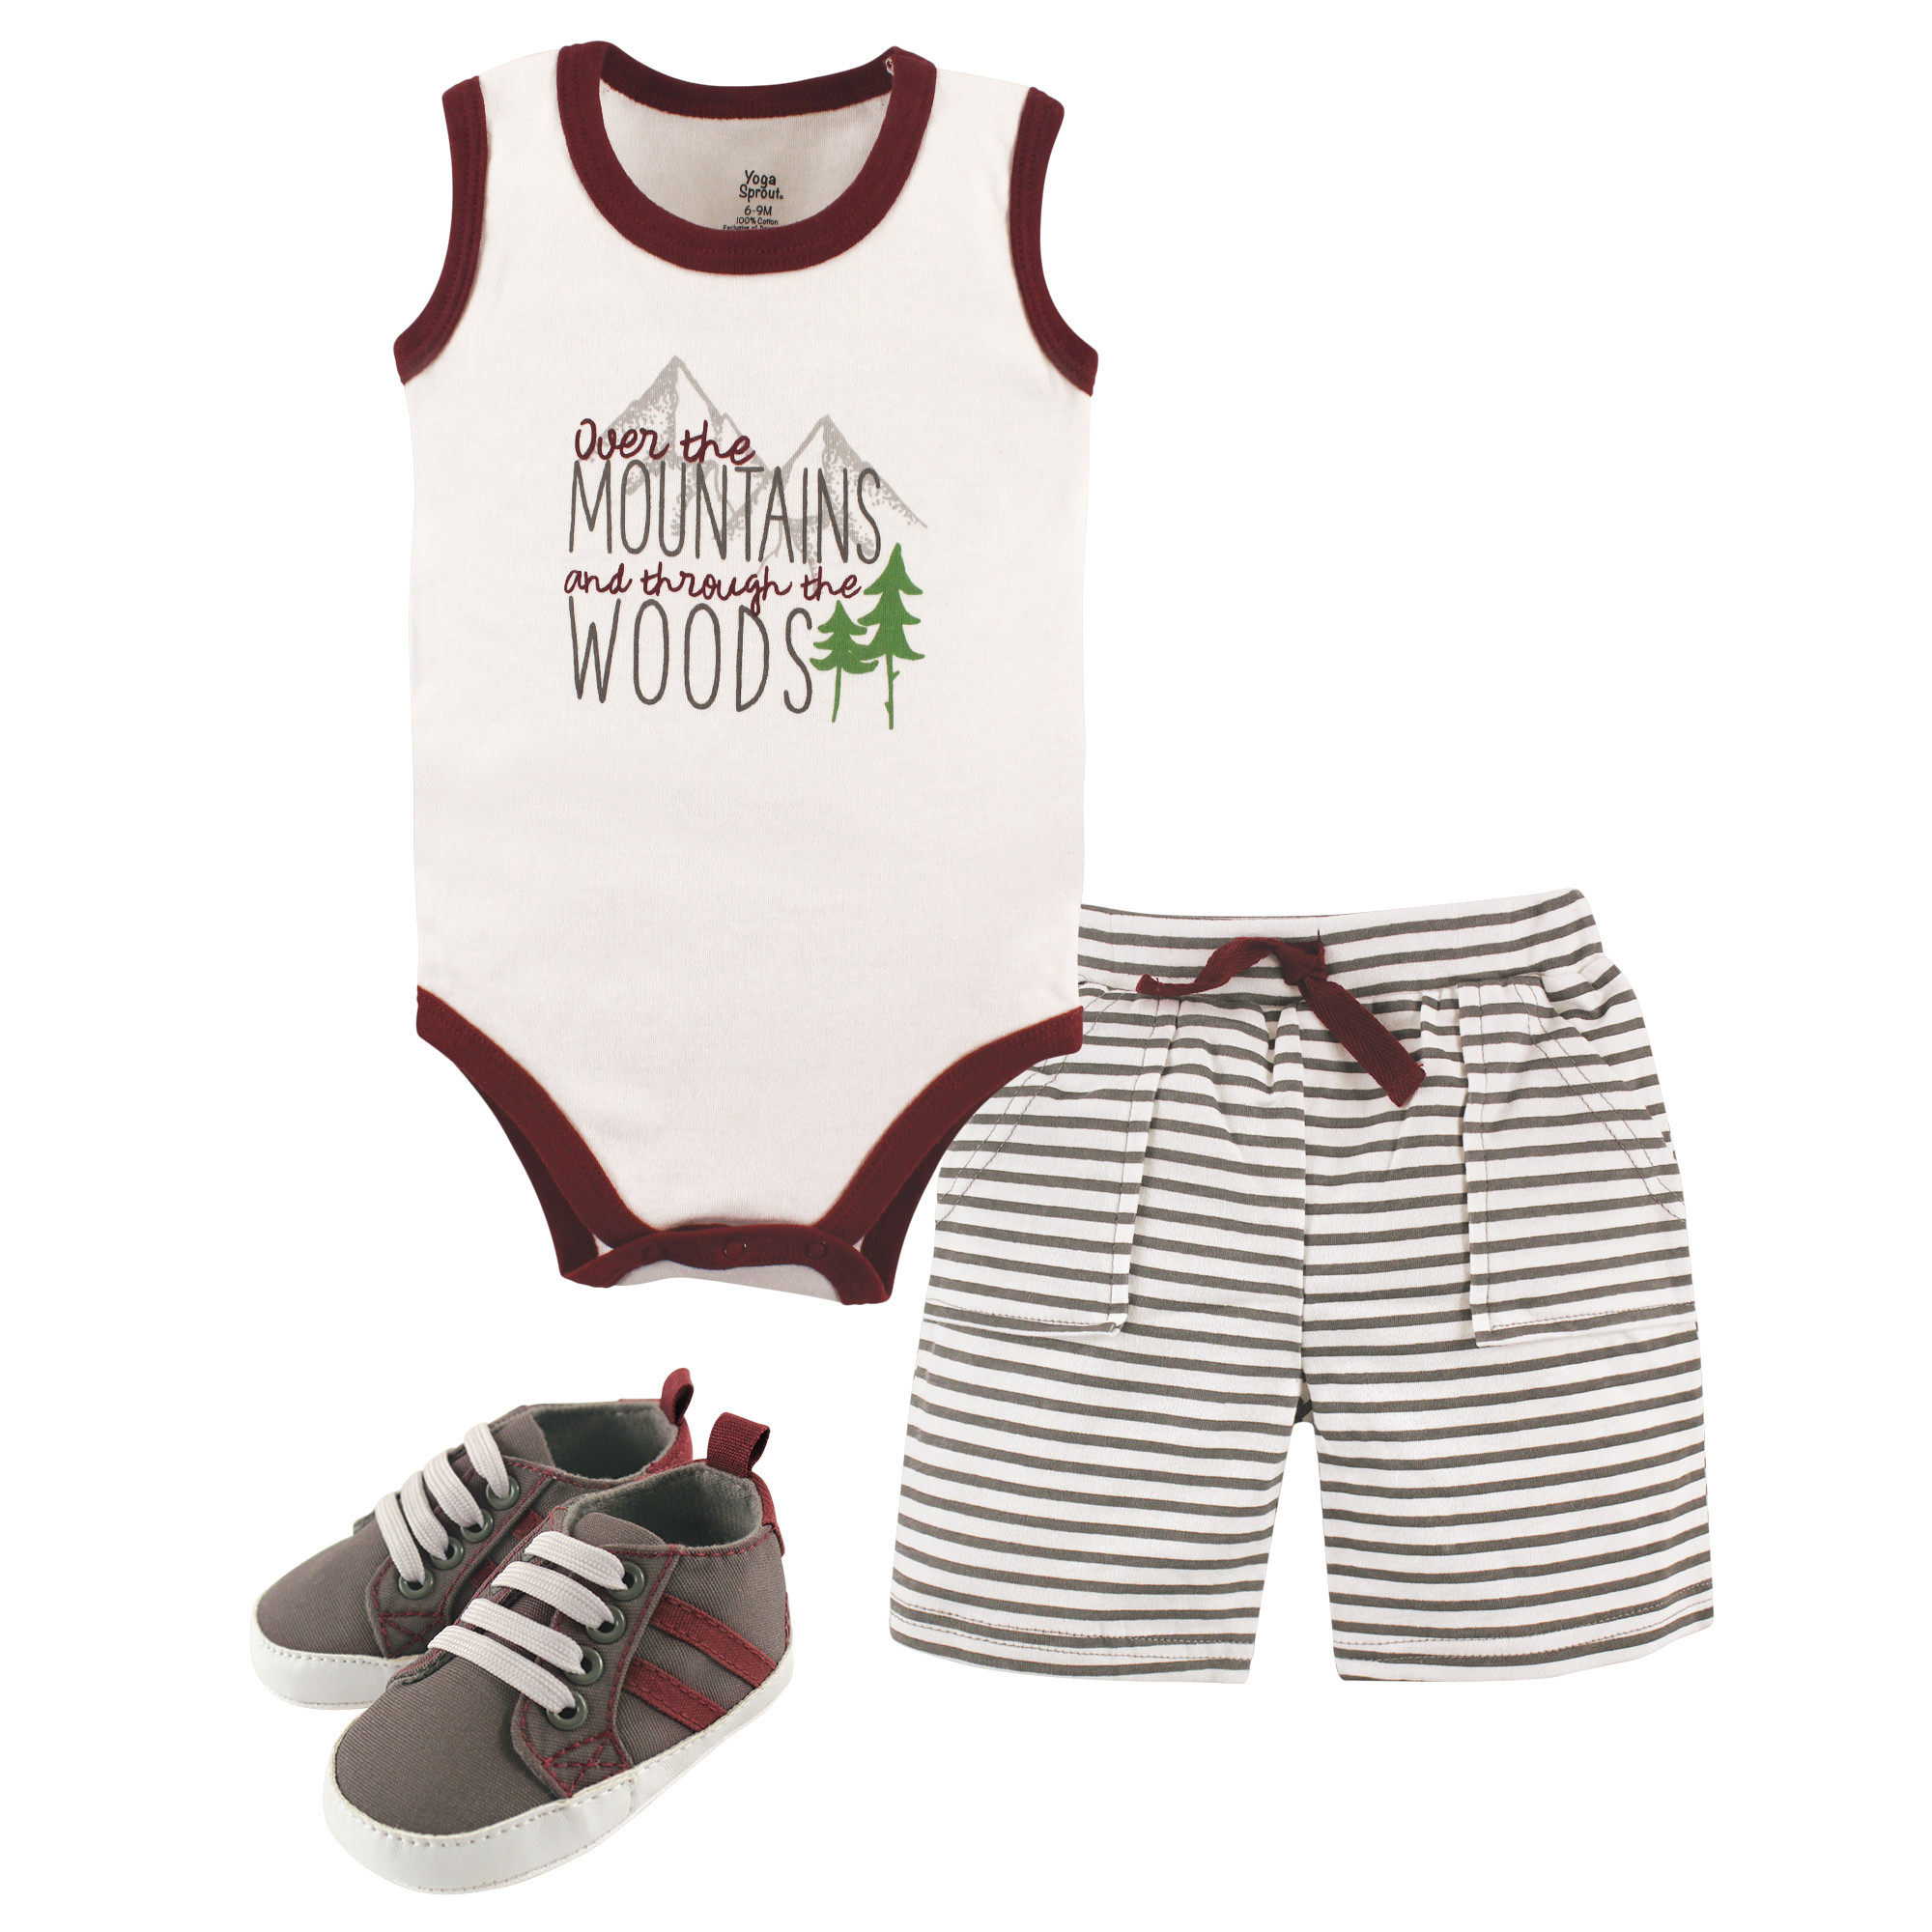 140df096a01a26 Bodysuit, Shorts and Shoes Set, 3 Piece, Over the Mountains. Yoga Sprout